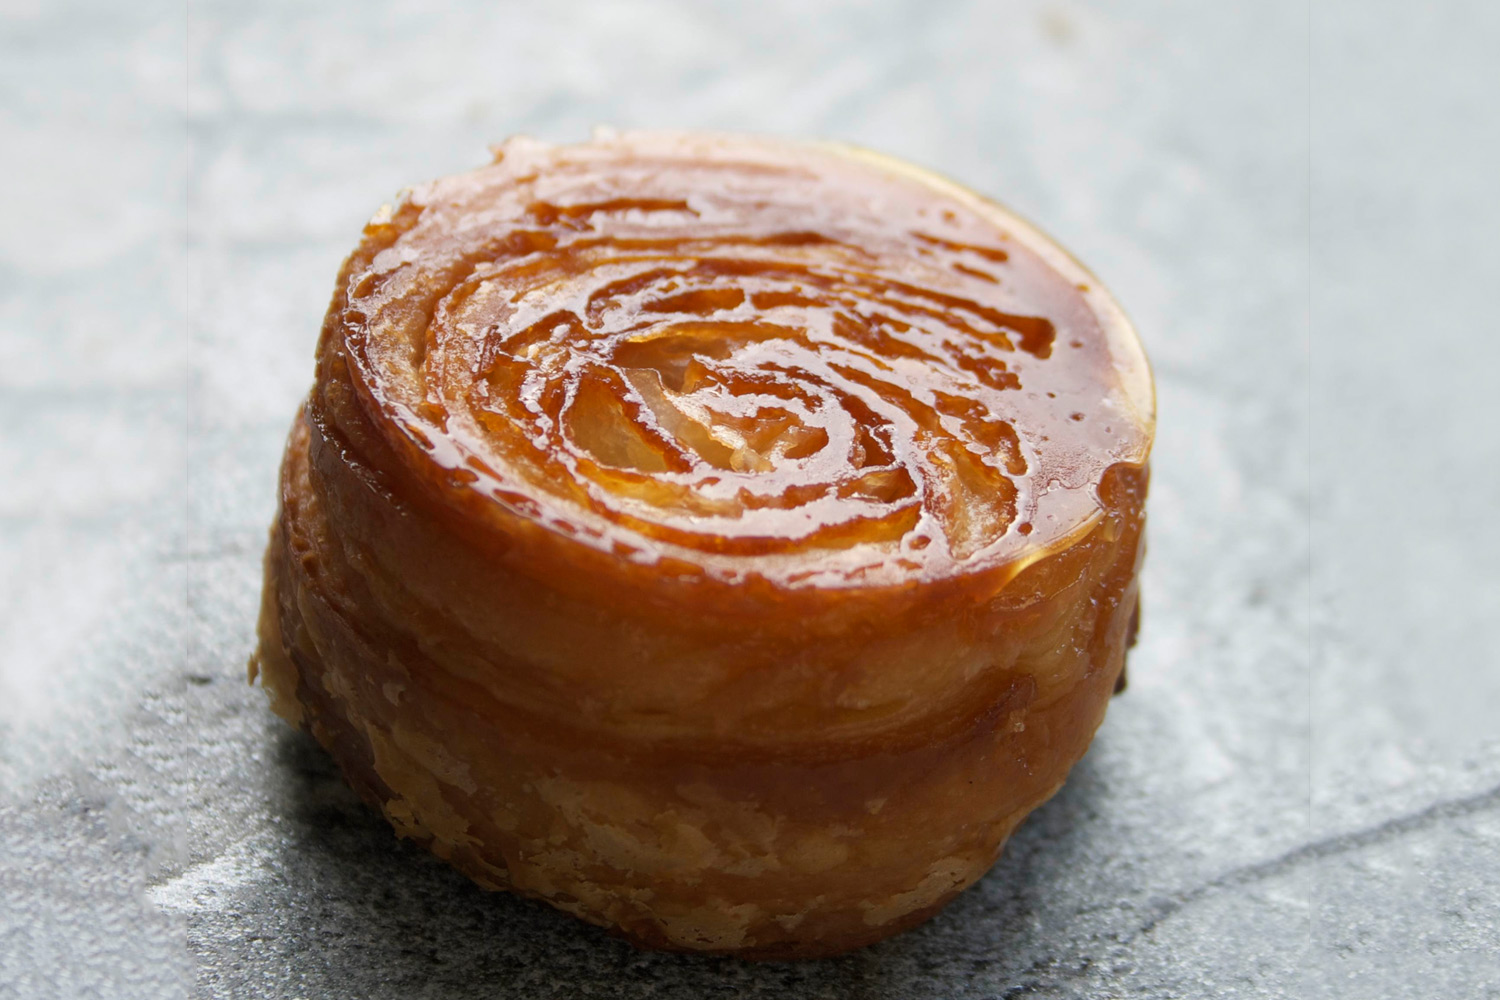 A Kouign-Amann from Yeast Bakery